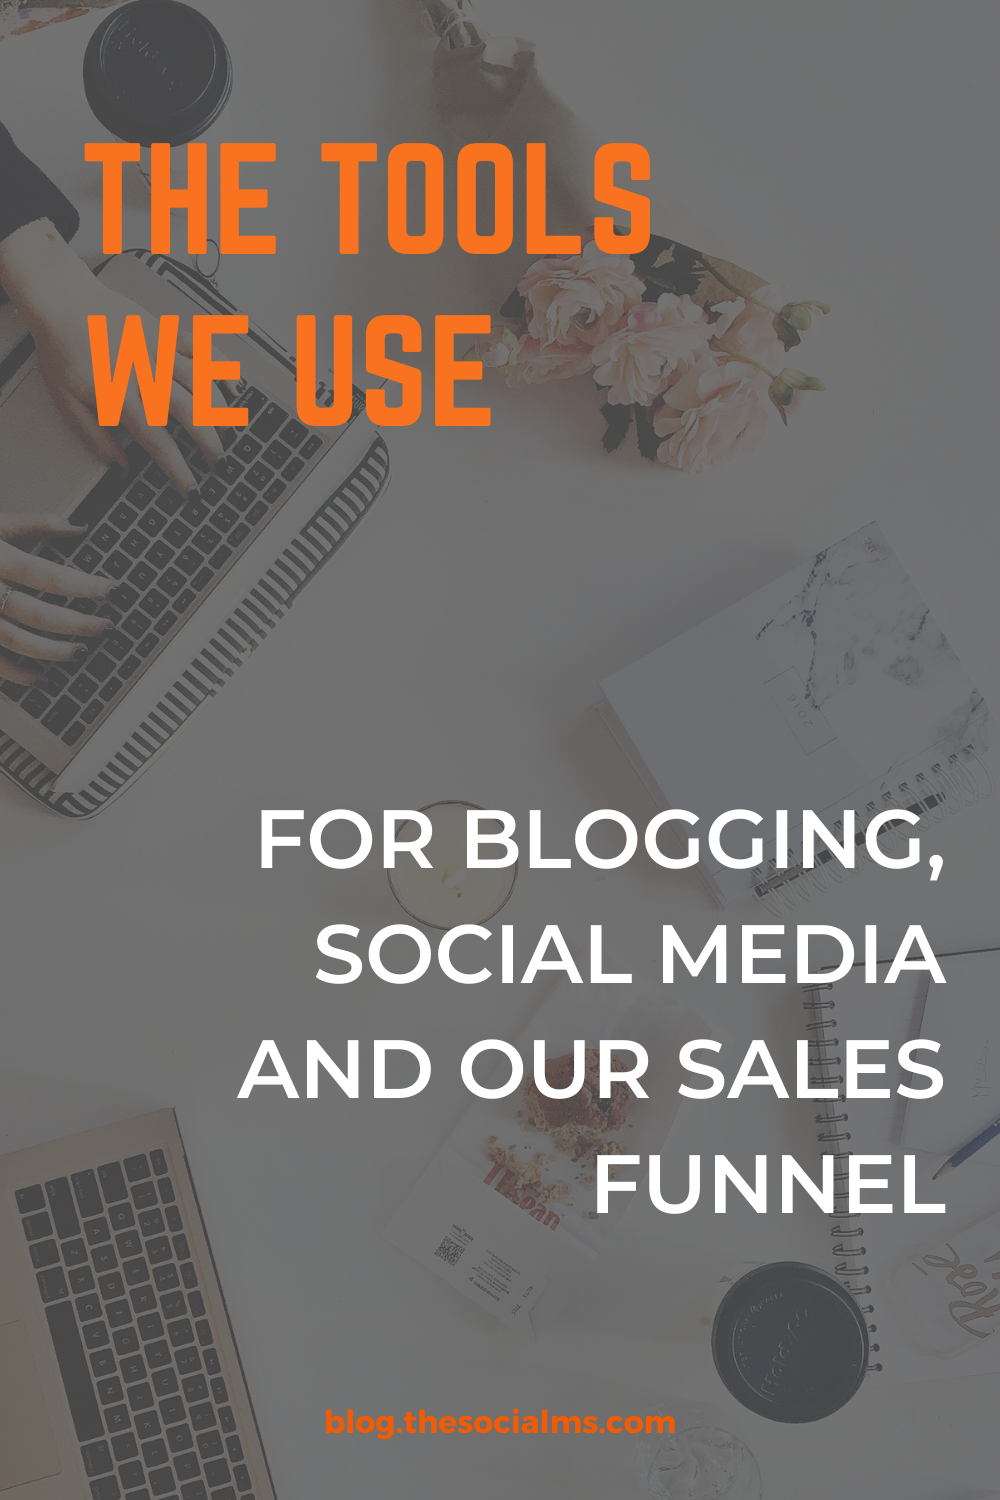 here is our 2020 list of tools that we use and recommend - with the reasons why we chose this tool over another. These tools will help you to become a better blogger - and make more money blogging. #bloggingtools #socialmediatools #makemoneblogging #salesfunnel #bloging101 #bloggingbusiness #onlinebusiness #smallbusinessmarketing